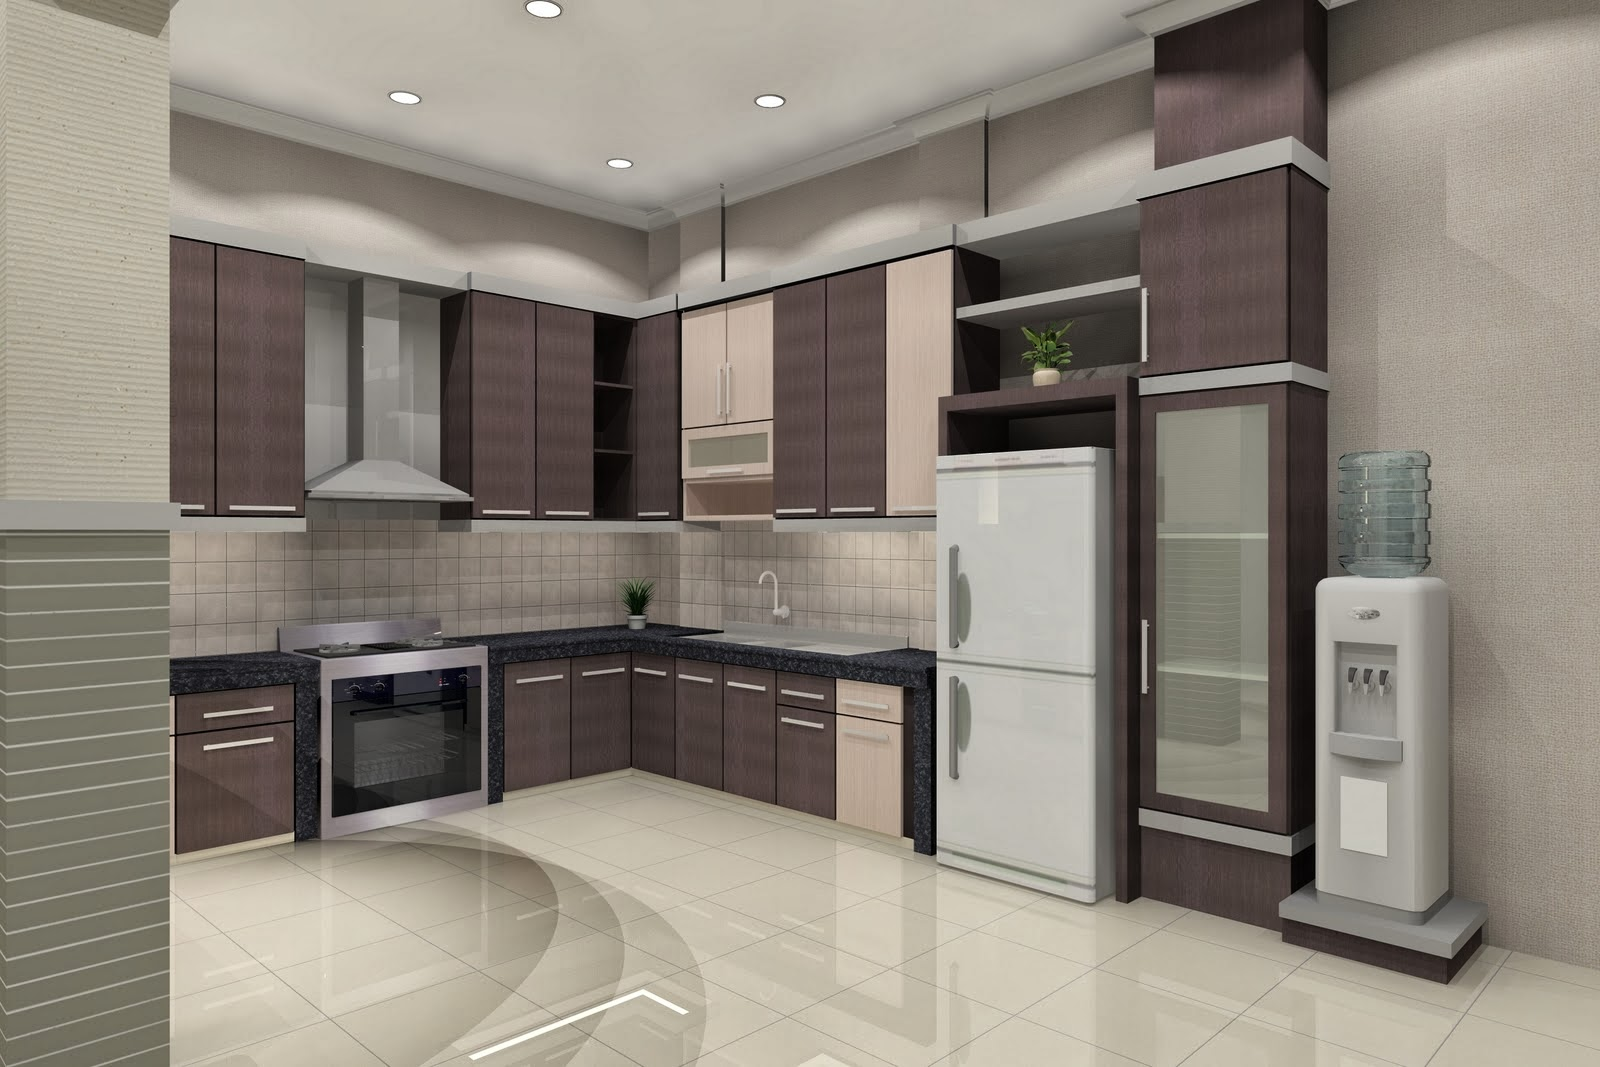 contemporary kitchen designs 2014 modern kitchen design for minimalist house 2014 home 239